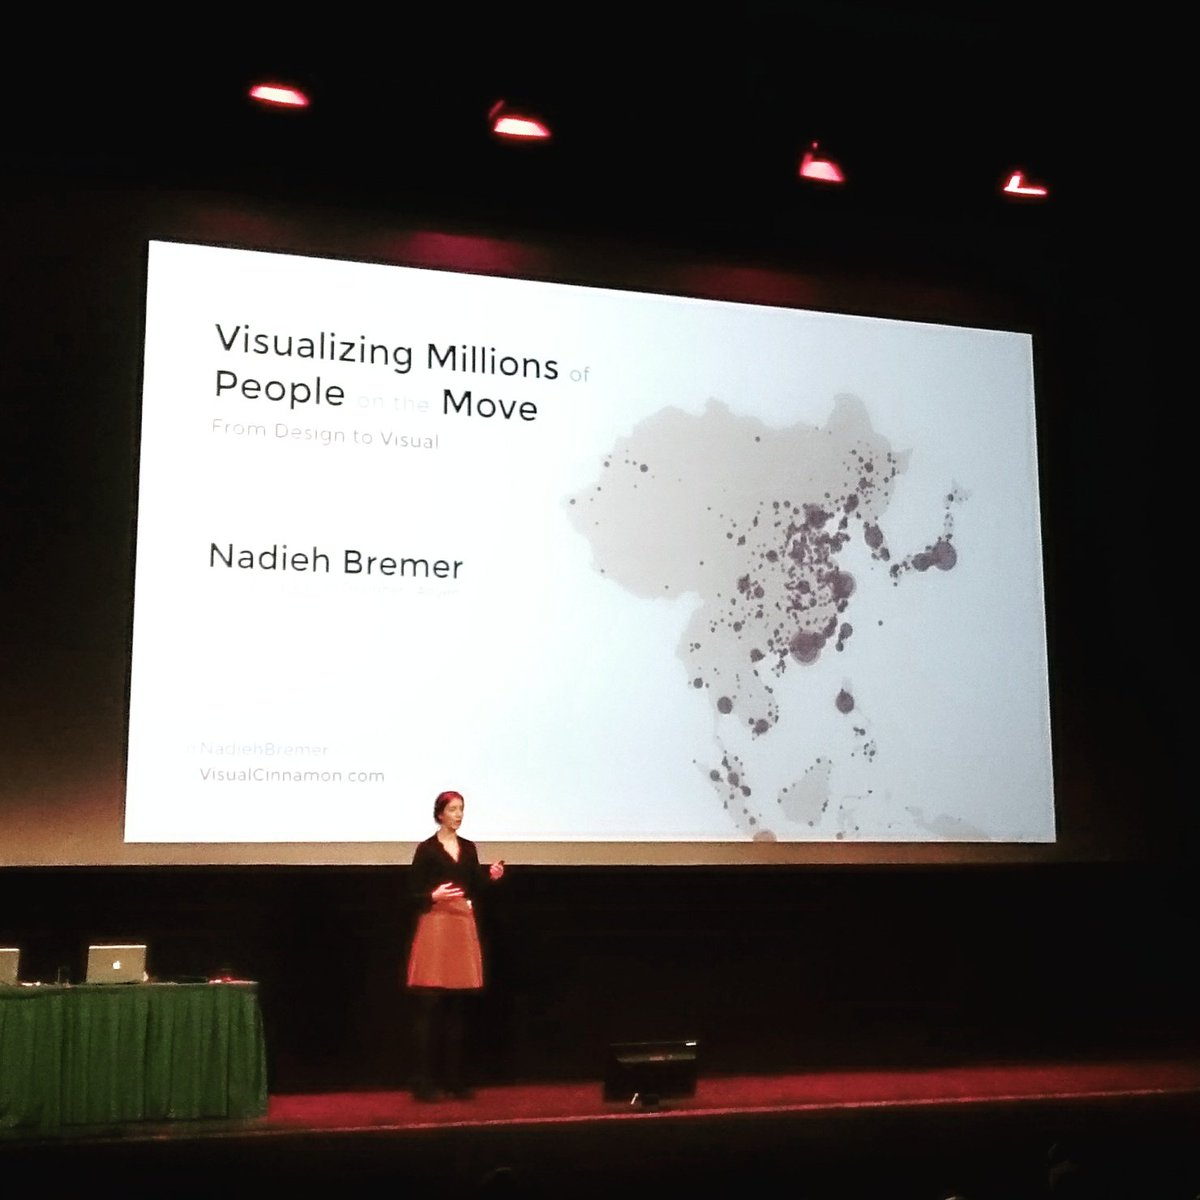 Nadieh Bremer talking about dataviz at #ic2016nl. #engage #inspire #convince https://t.co/p96EfSG92p